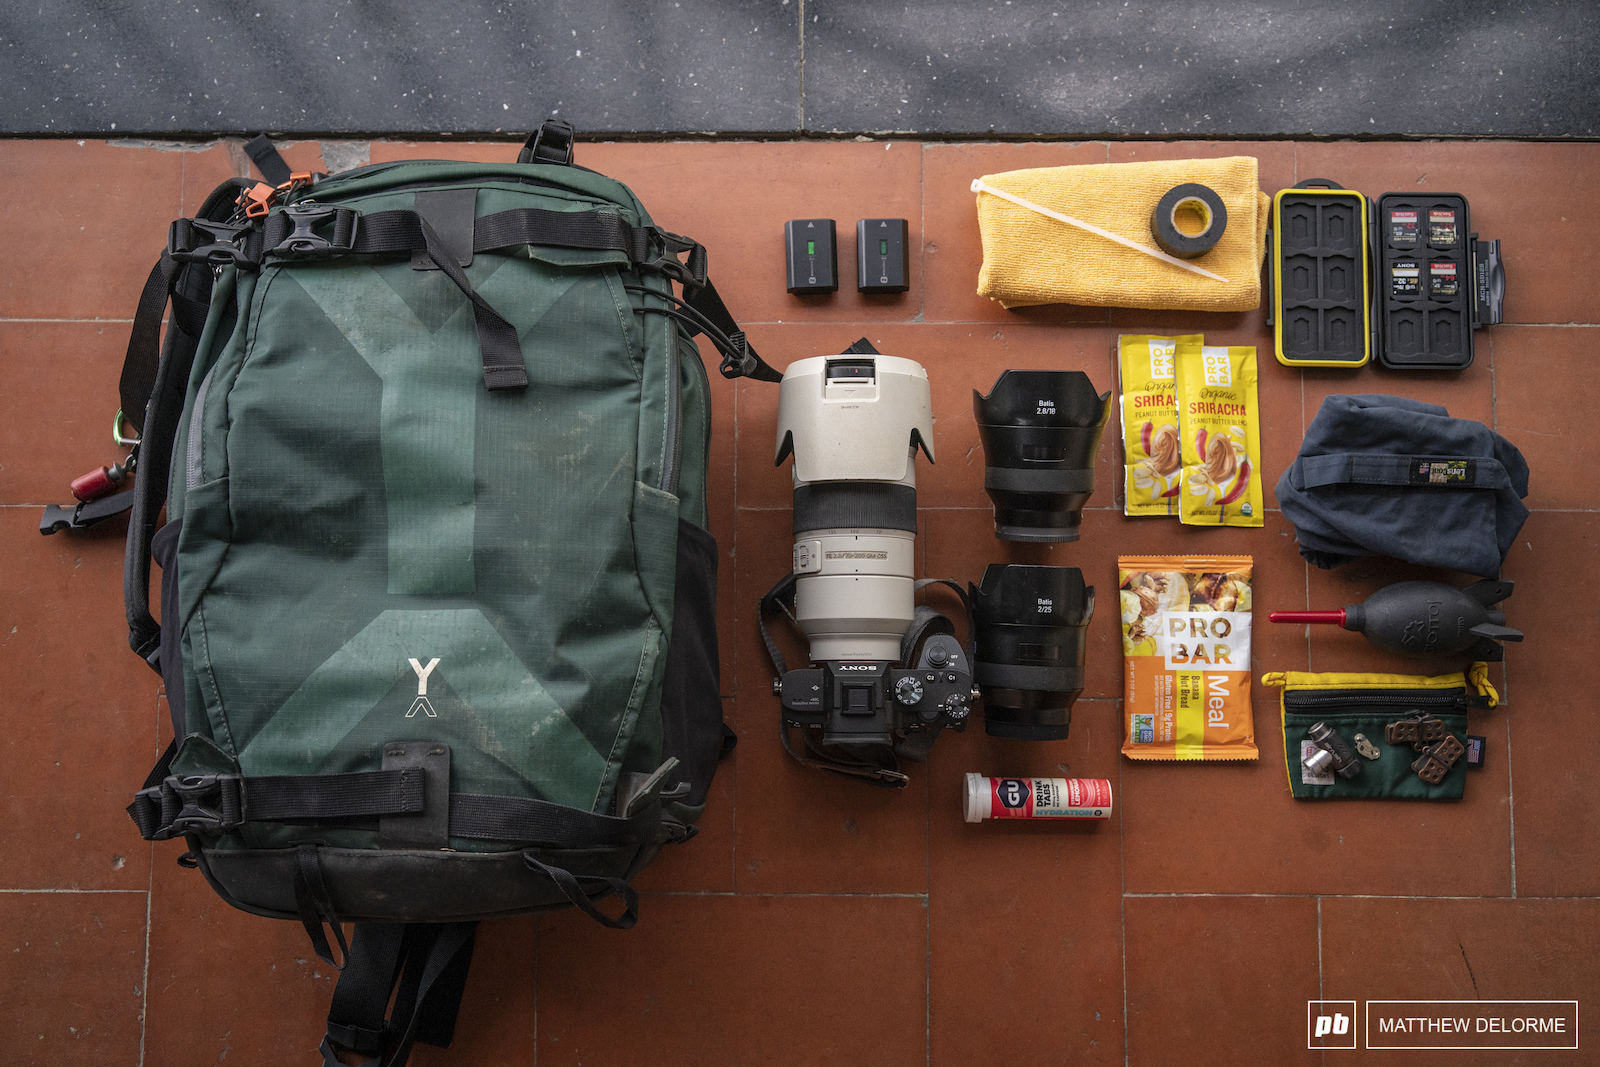 Matthew DeLorme s set up for a typical day of shooting EWS. NYA EVO Fjord 36 camera bag. NYA EVO is a relatively new bag company. Their philosophy is to make a rugged bag with as little environmental impact. The pack rides well and doesn t push up on the back of the helmet when the going gets steep. Inside Sony A7III Sony 70-200 2.8 G Master Zeiss Batis 18 2.8 Zeiss Batis 25 2 Rocket Air ProBar Meal Bar ProBar Siracha Peanut Butter electrolyte tabs electrical tape quick link brake pads batteries Co2 head zip tie tape towel lens coat rain cover. If the weather looks iffy I ll bring rain gear as well.